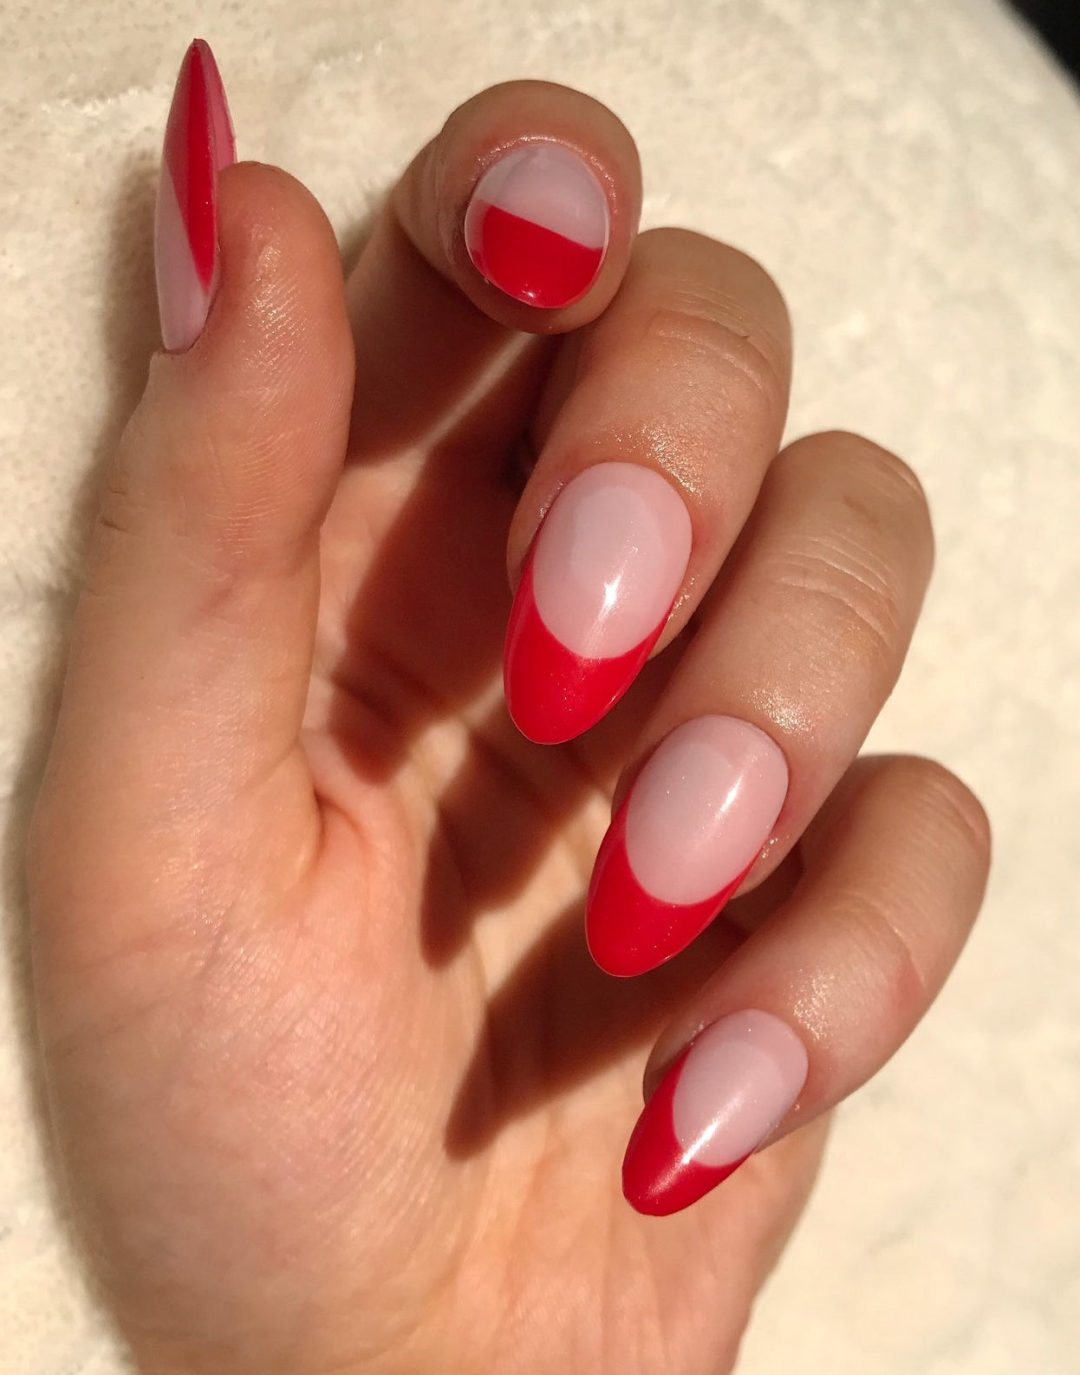 Red French tip nails in almond shape